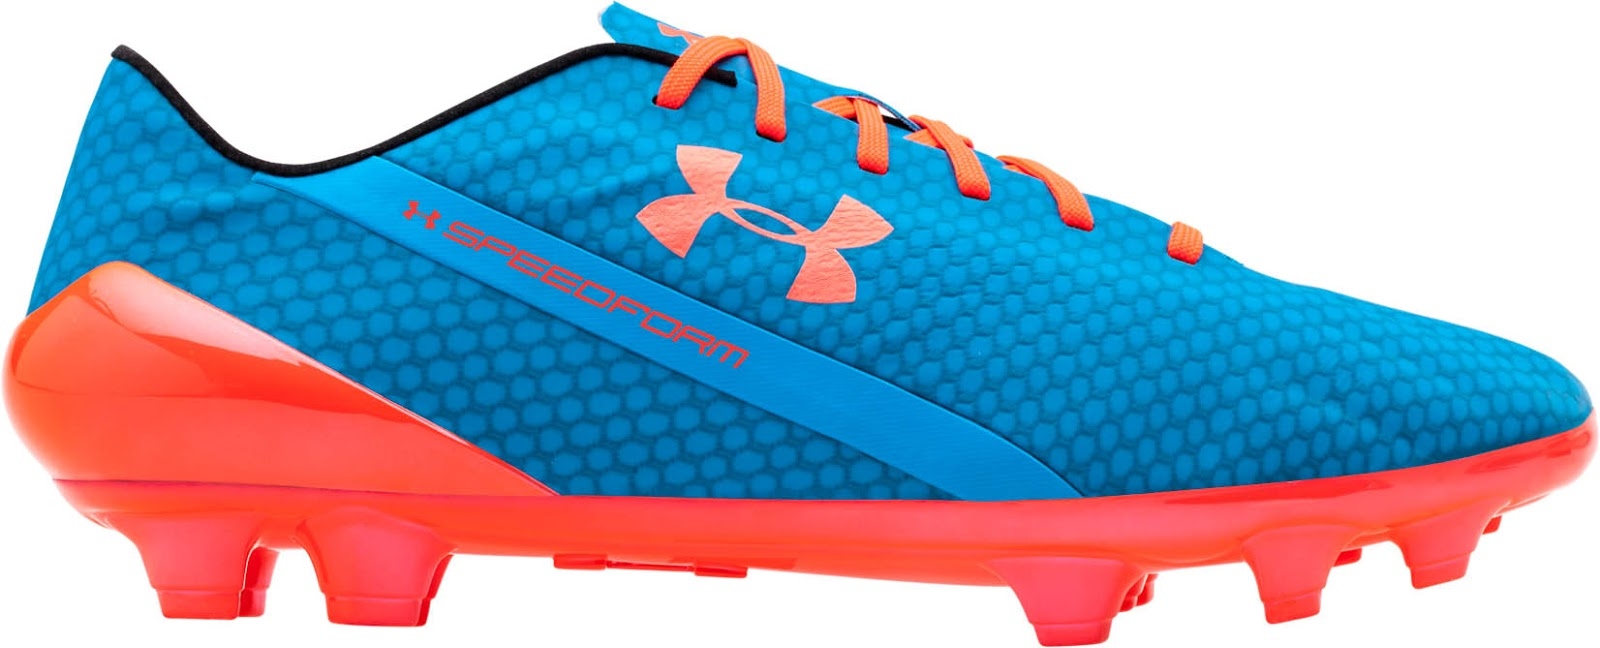 ua speedform cleats